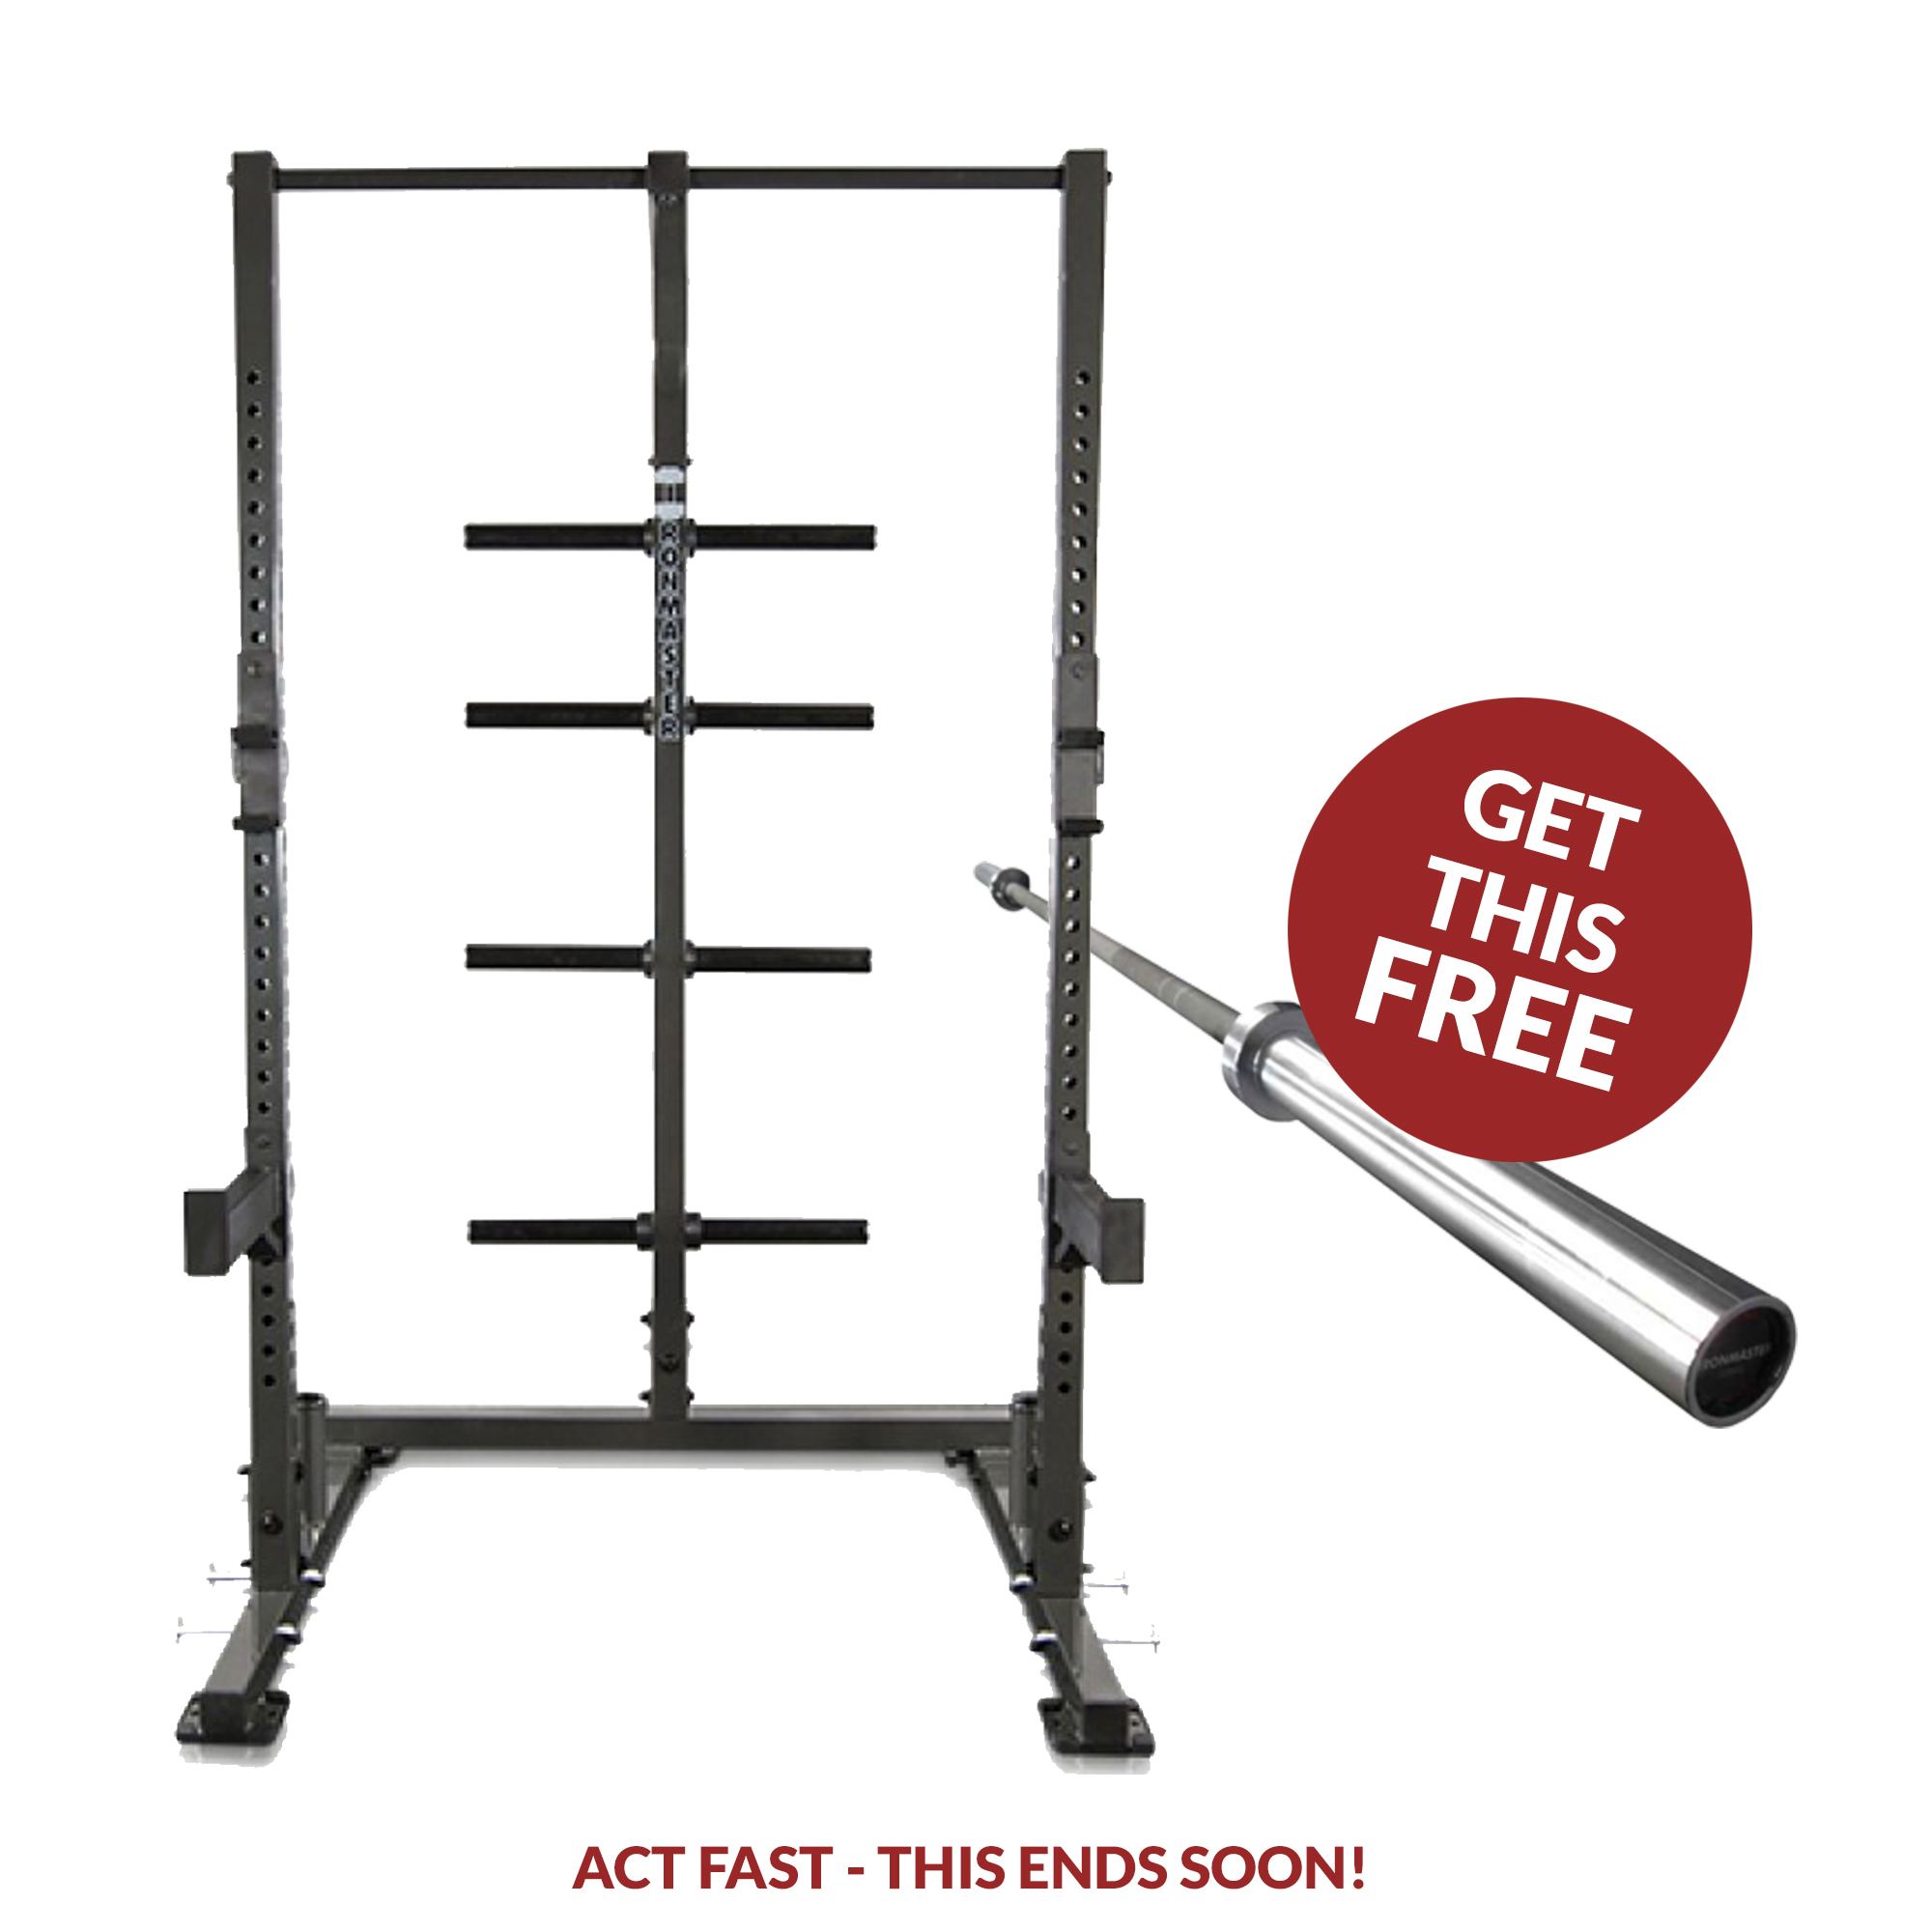 pressing ideal rack back space and doing t fitness folding creative short other fold barbell limited storage anyone is wall bench with titan the shupfpwr series squats itm for start power dips deep mounted exercises